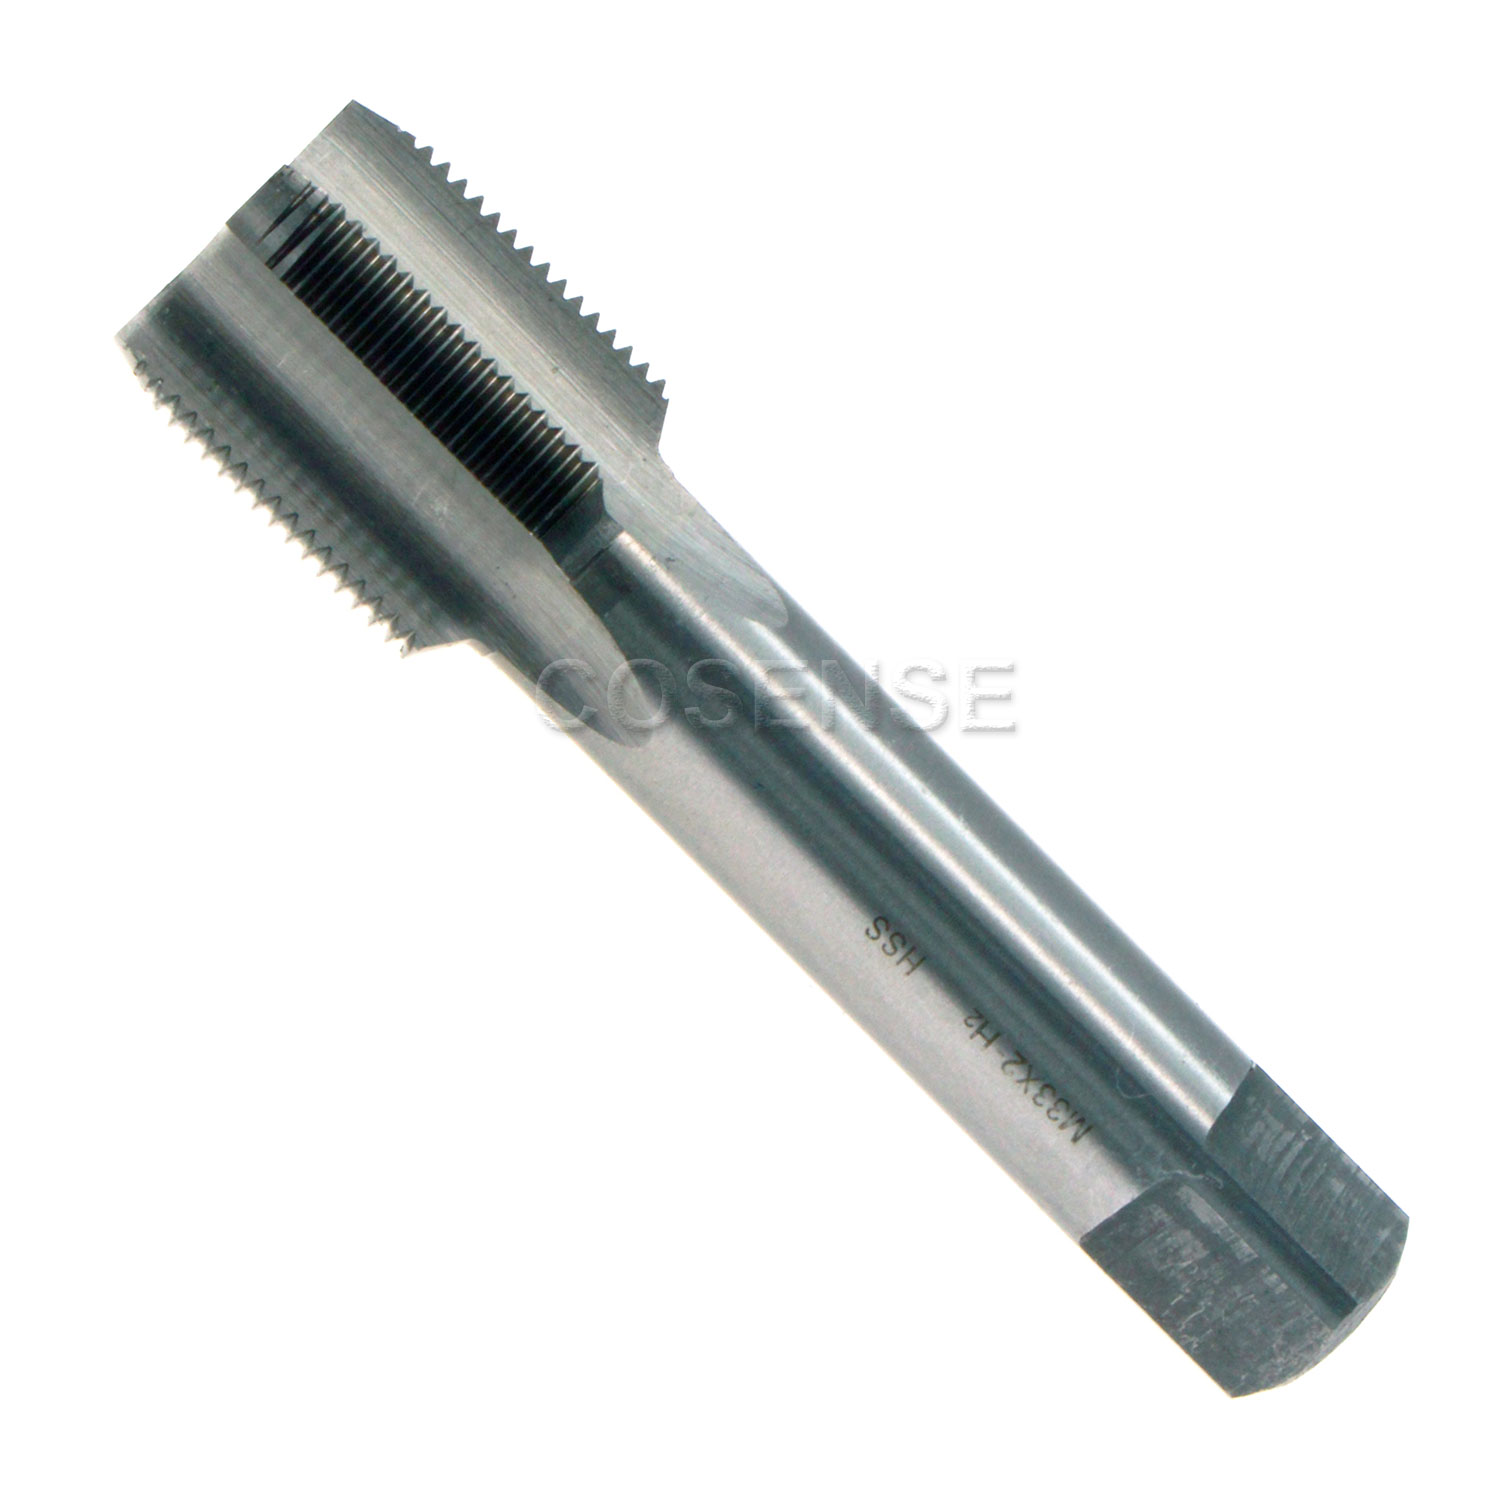 1pcs Metric Right Hand Tap M34 X 2.0mm Taps Threading Tools 34mm X 2.0mm pitch